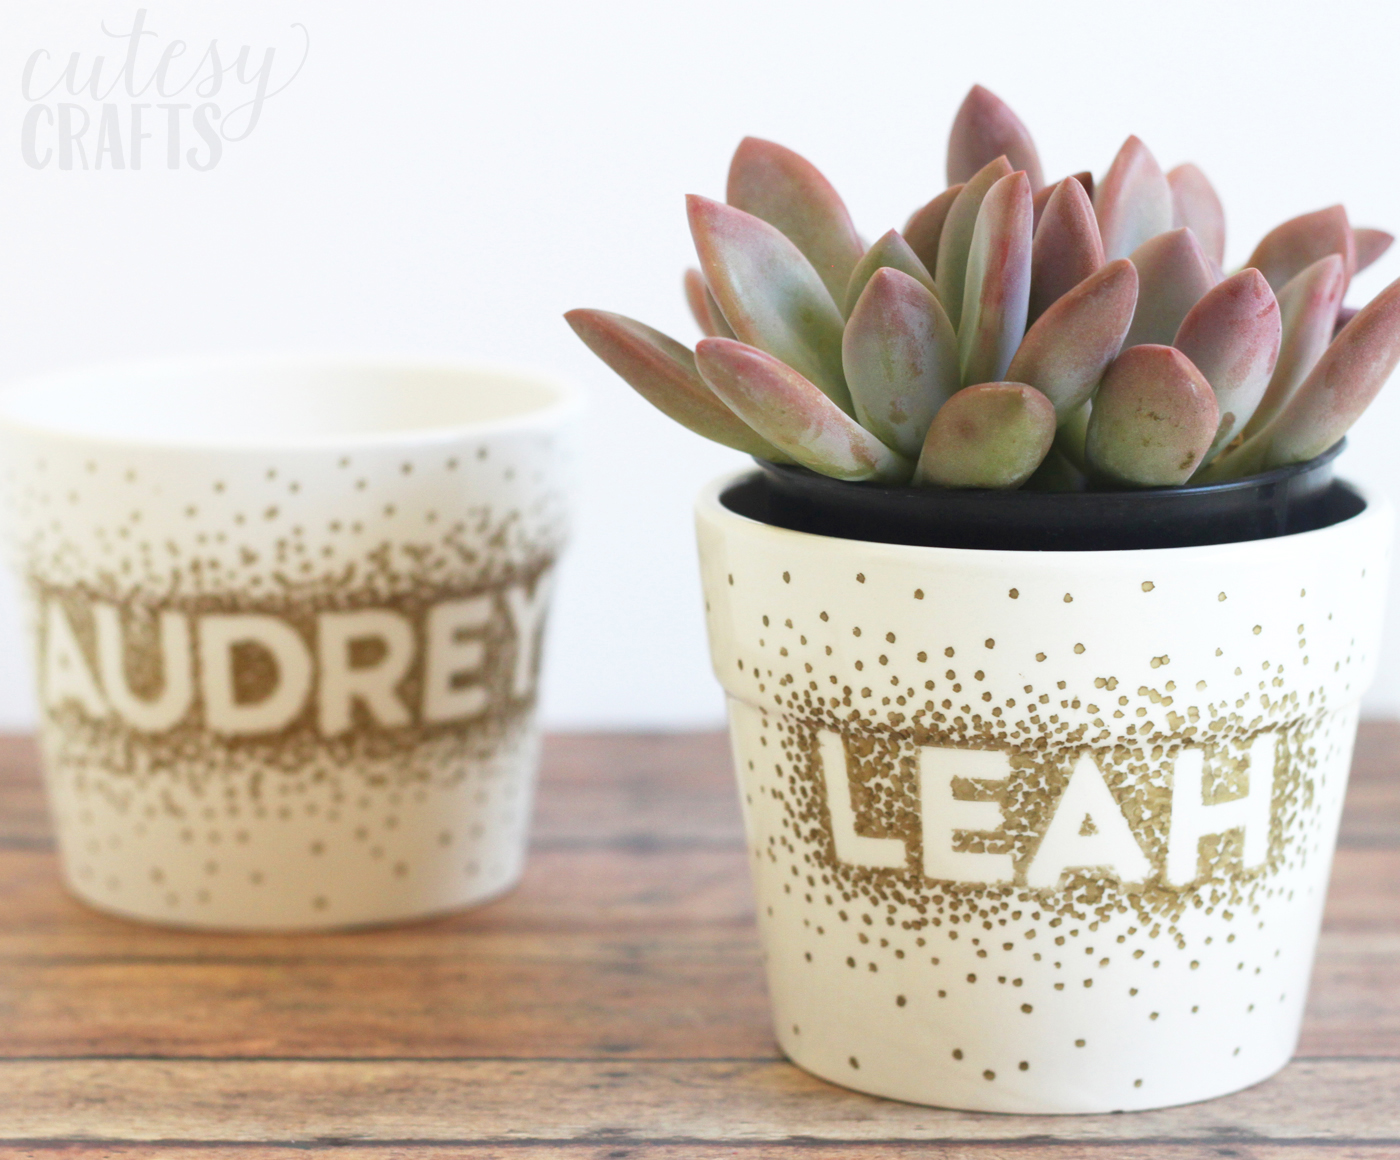 Use a Sharpie to make dots in this unique flower pot craft! It's so easy that a child could do it, and you just need a few simple supplies.